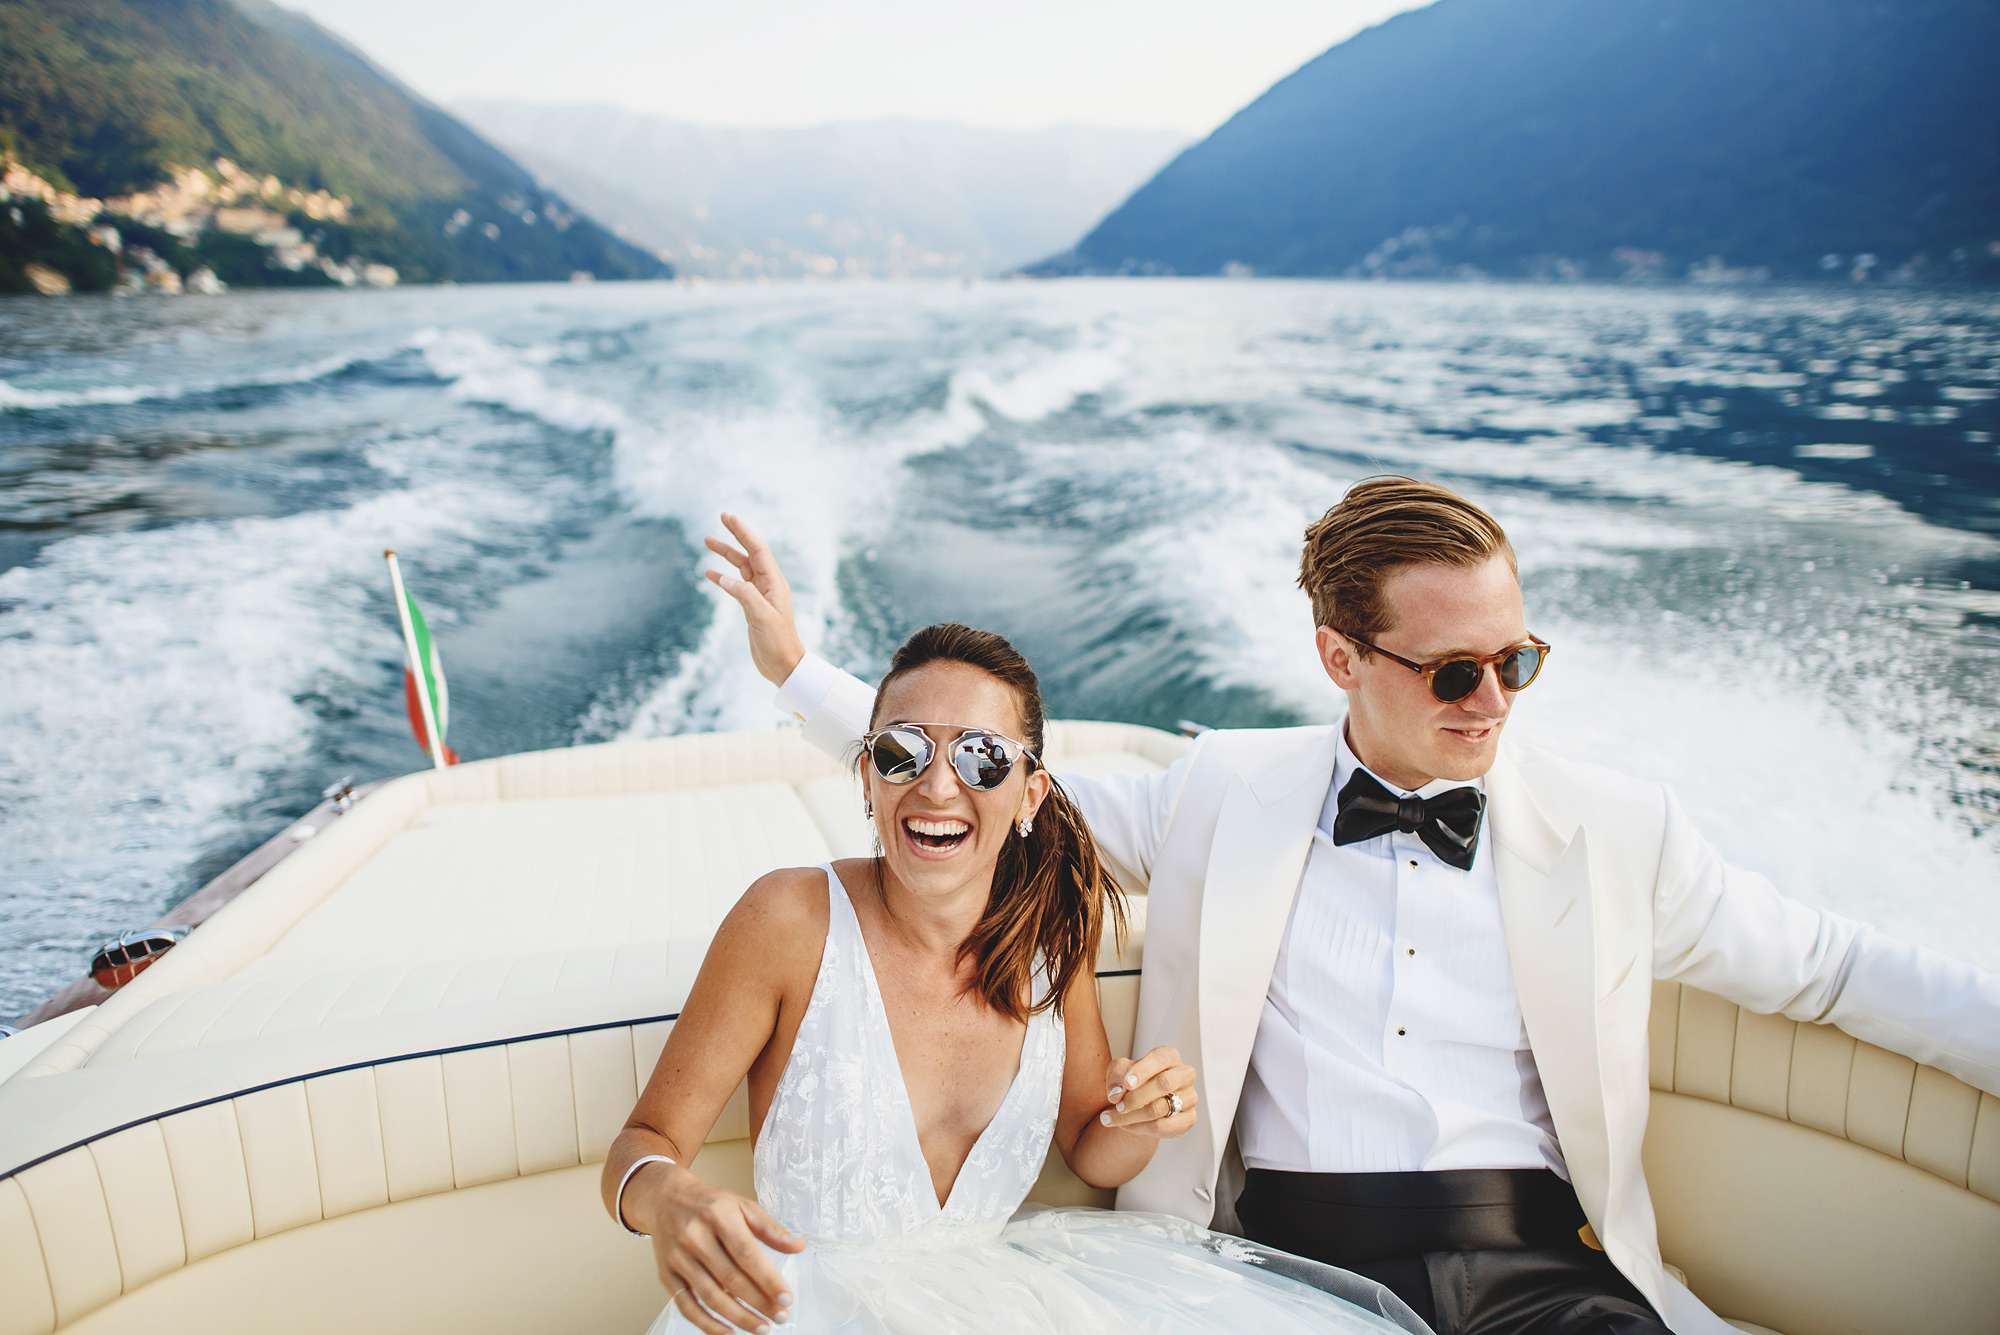 Laughing couple yachting on Lake Como - photo by Ross Harvey